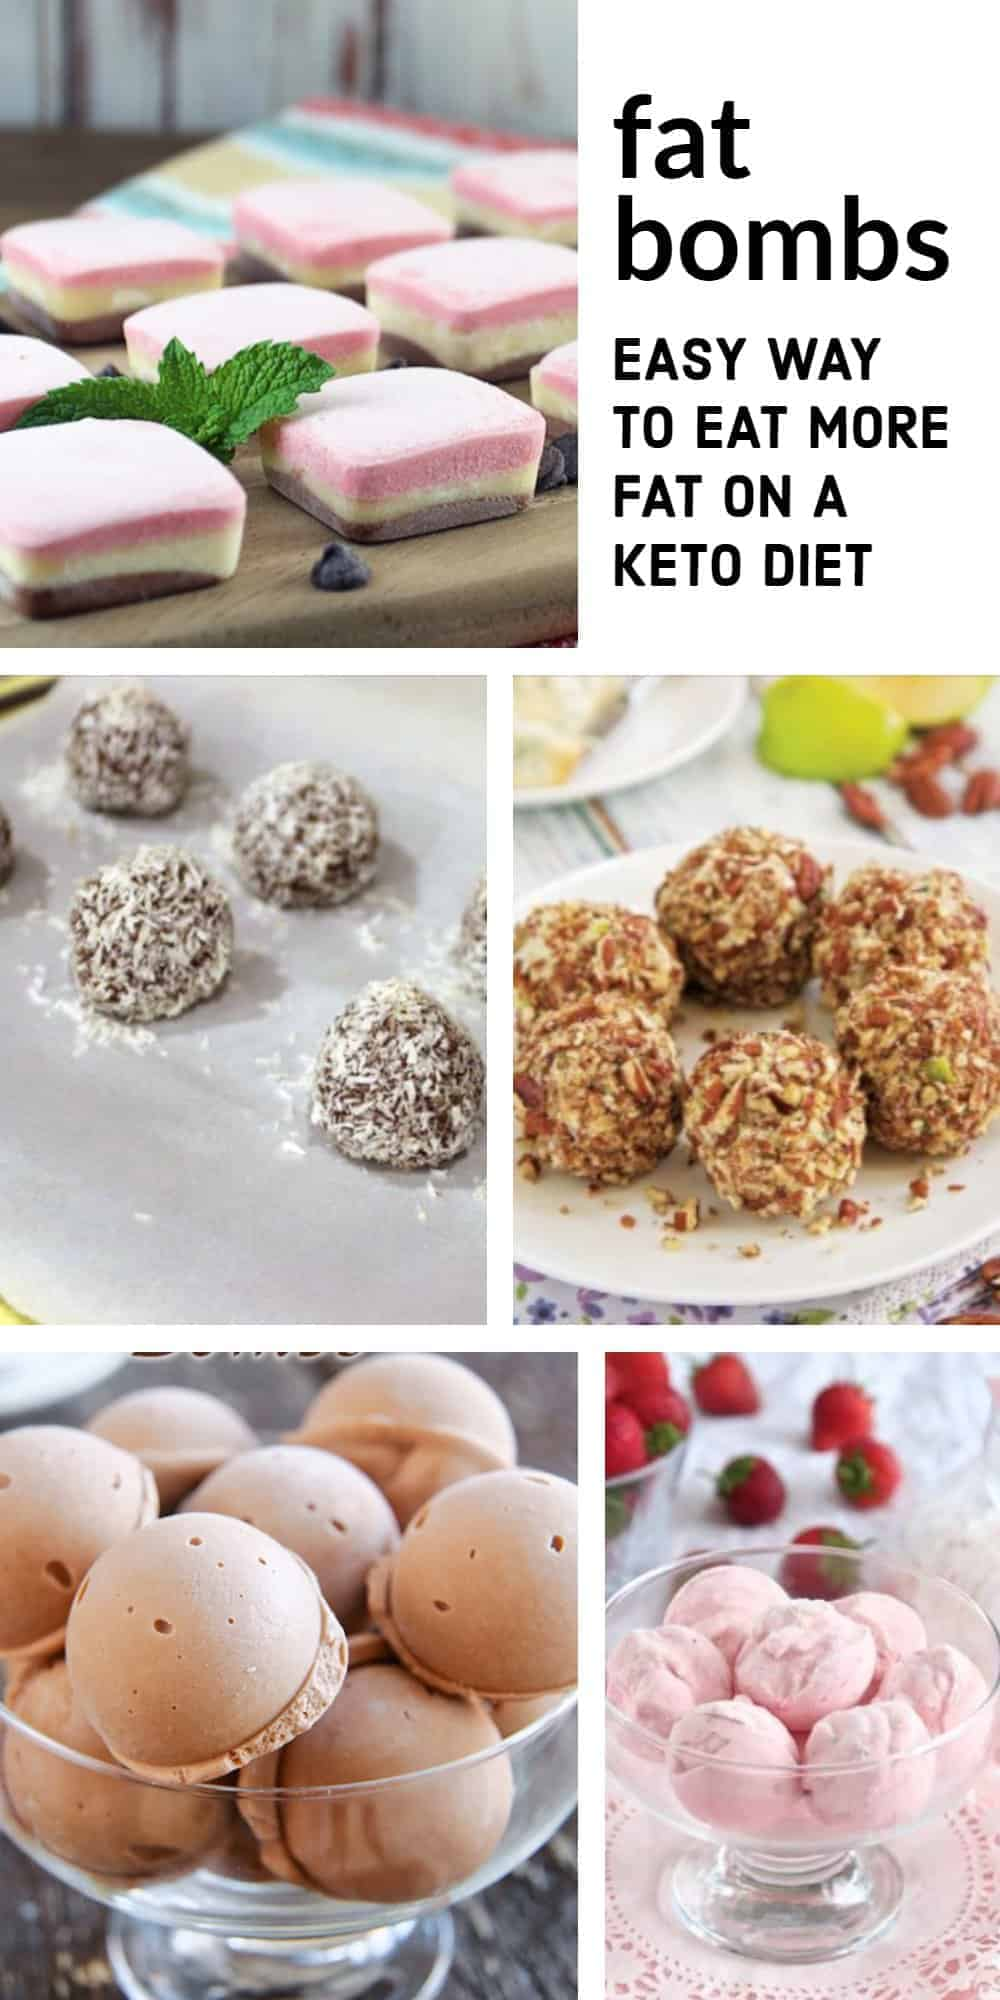 ketosis fat bombs including protein balls